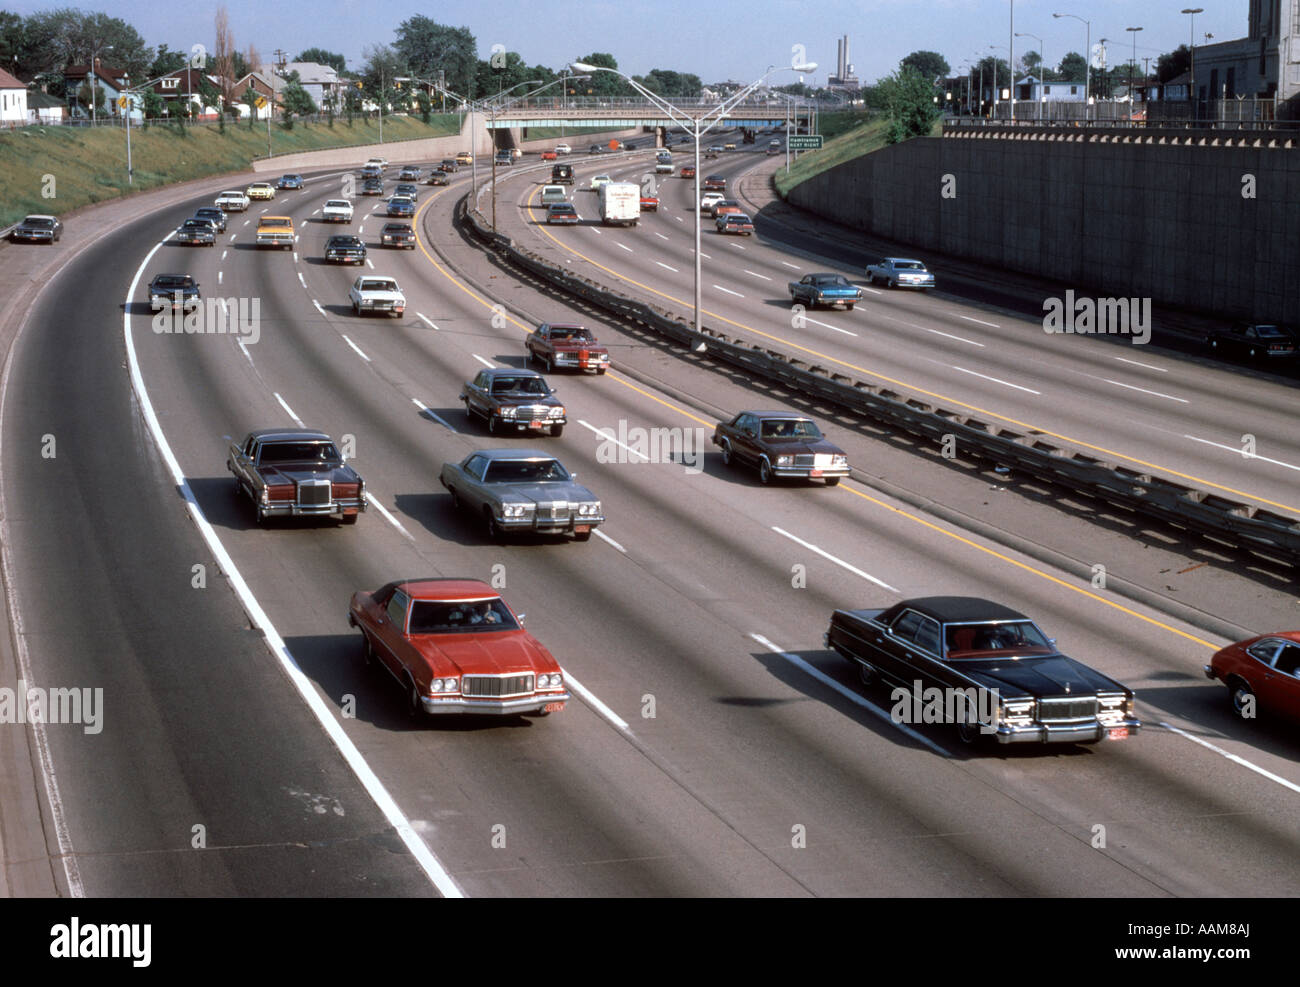 Freeway Auto Center >> 1970s CARS TRAFFIC ON I75 CHRYSLER FREEWAY NEAR DETROIT MICHIGAN Stock Photo: 12659705 - Alamy